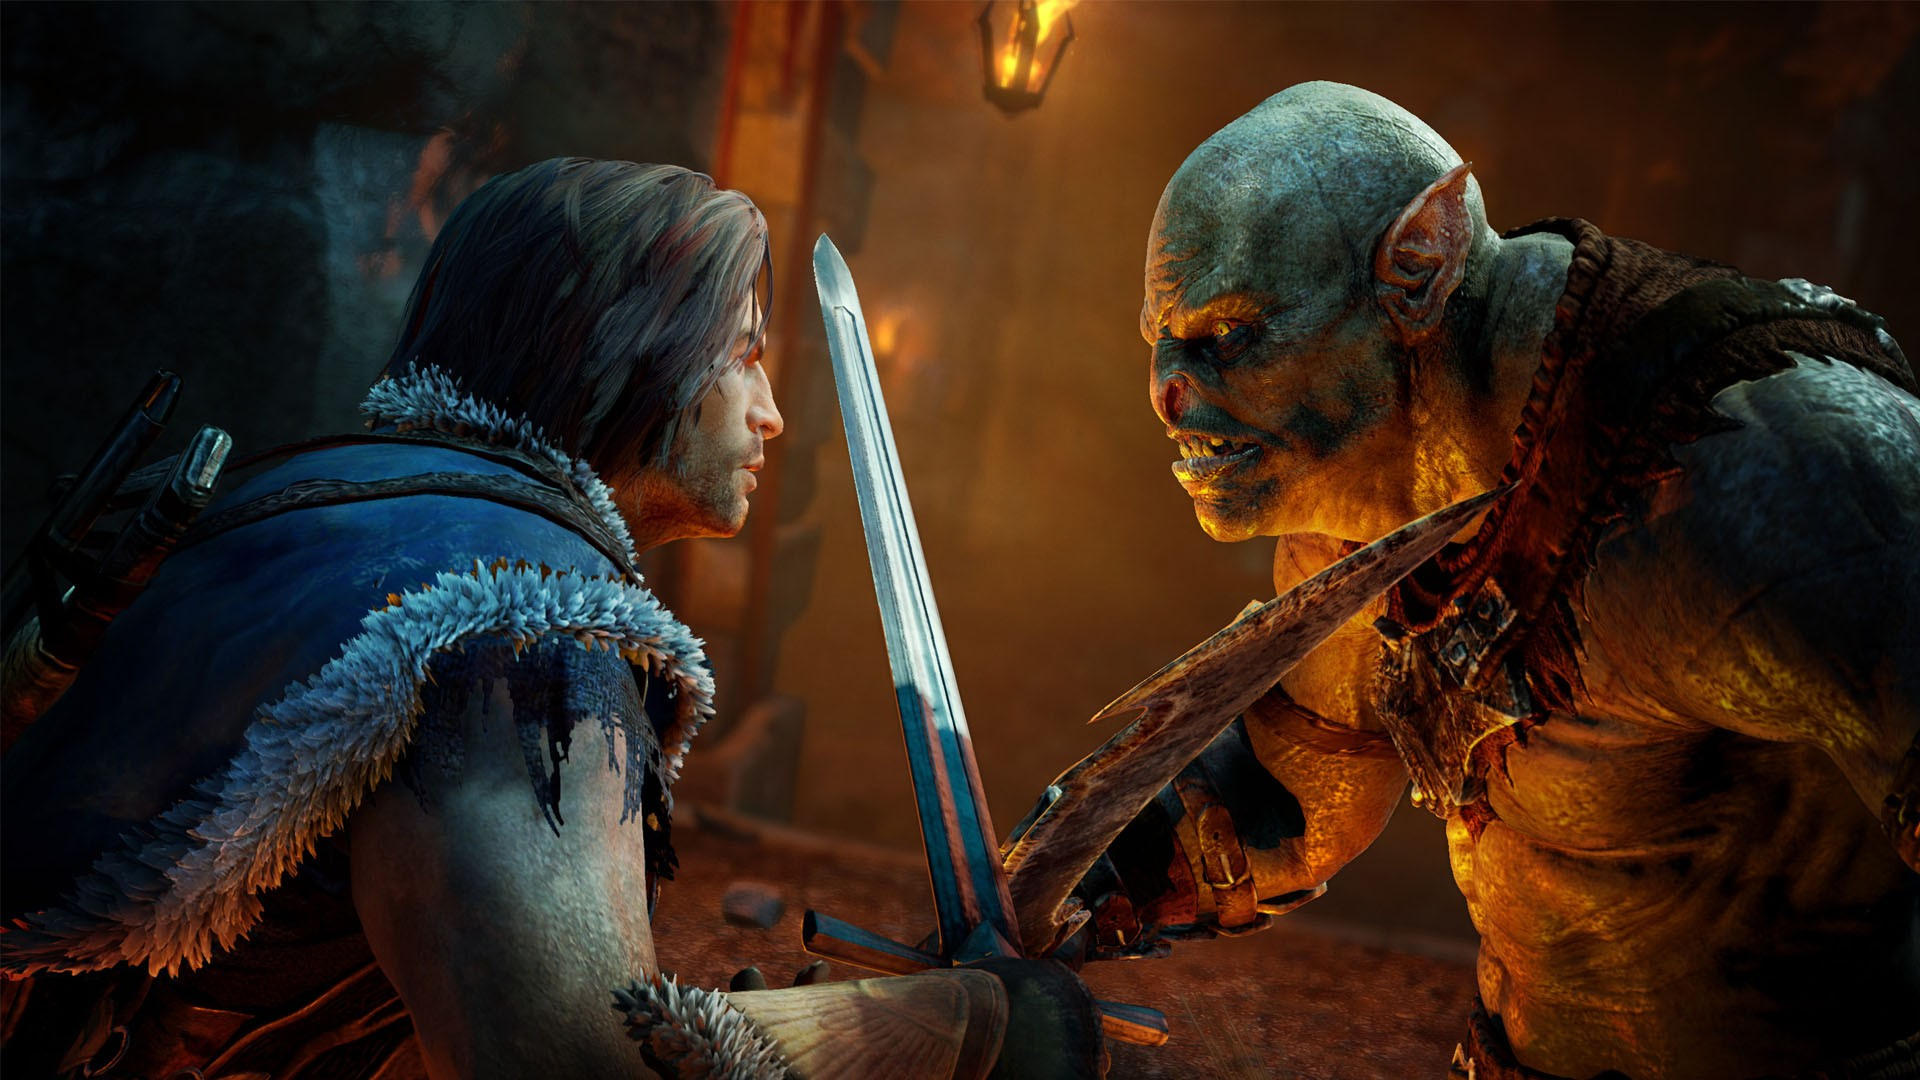 Скриншот 0 - Middle-earth: Shadow of Mordor Game of the Year Edition- Ключ Лицензии.